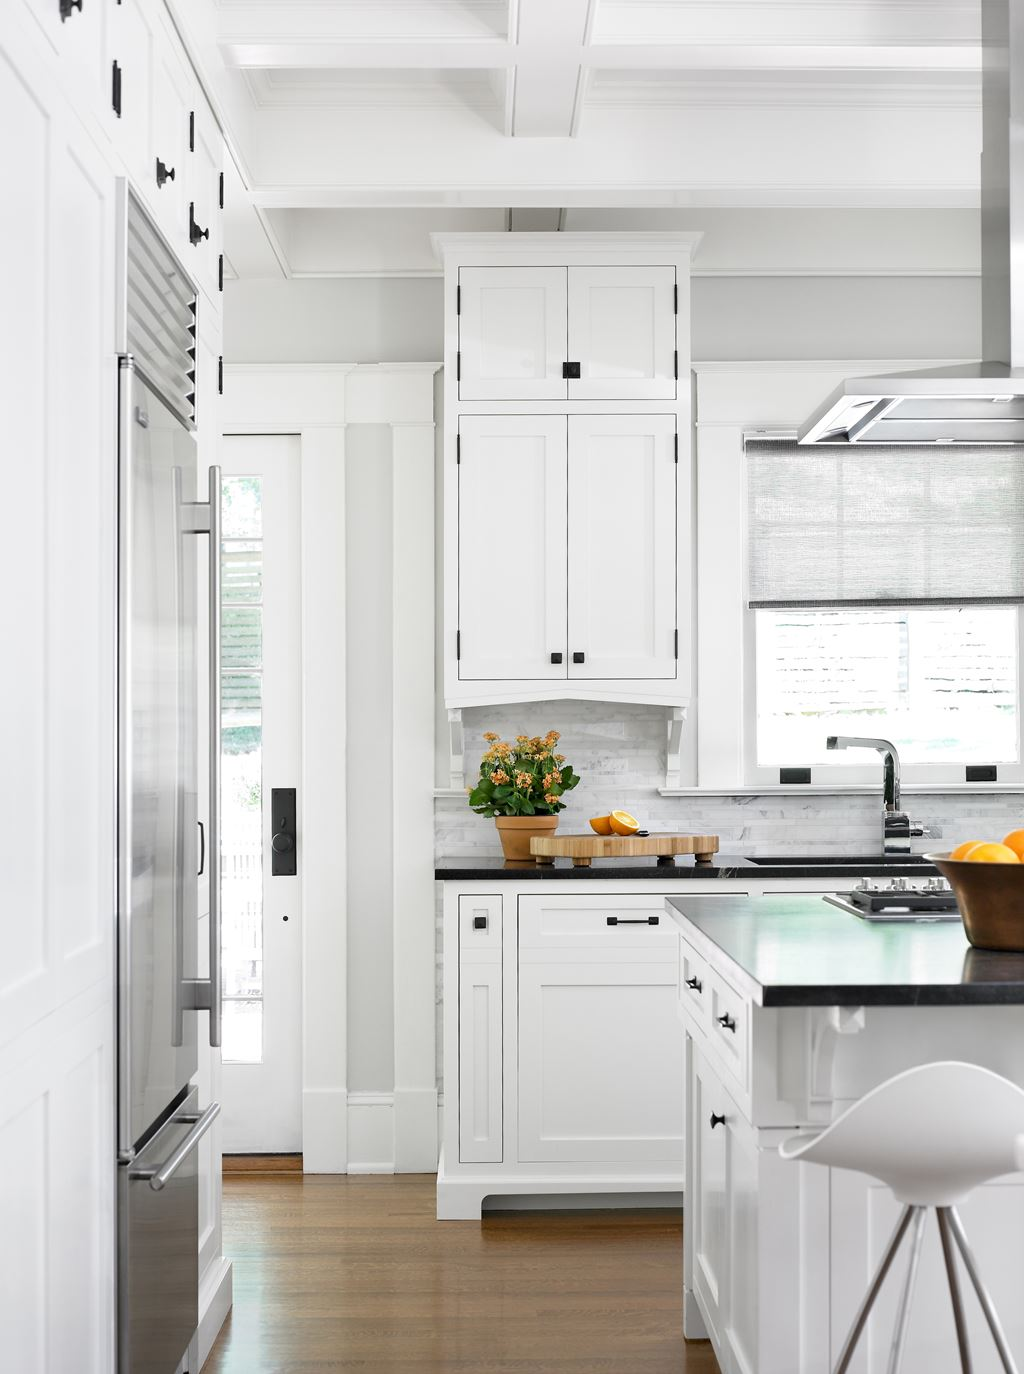 Jung Residence Kitchen Renovation | Sub-Zero, Wolf, and Cove Kitchens